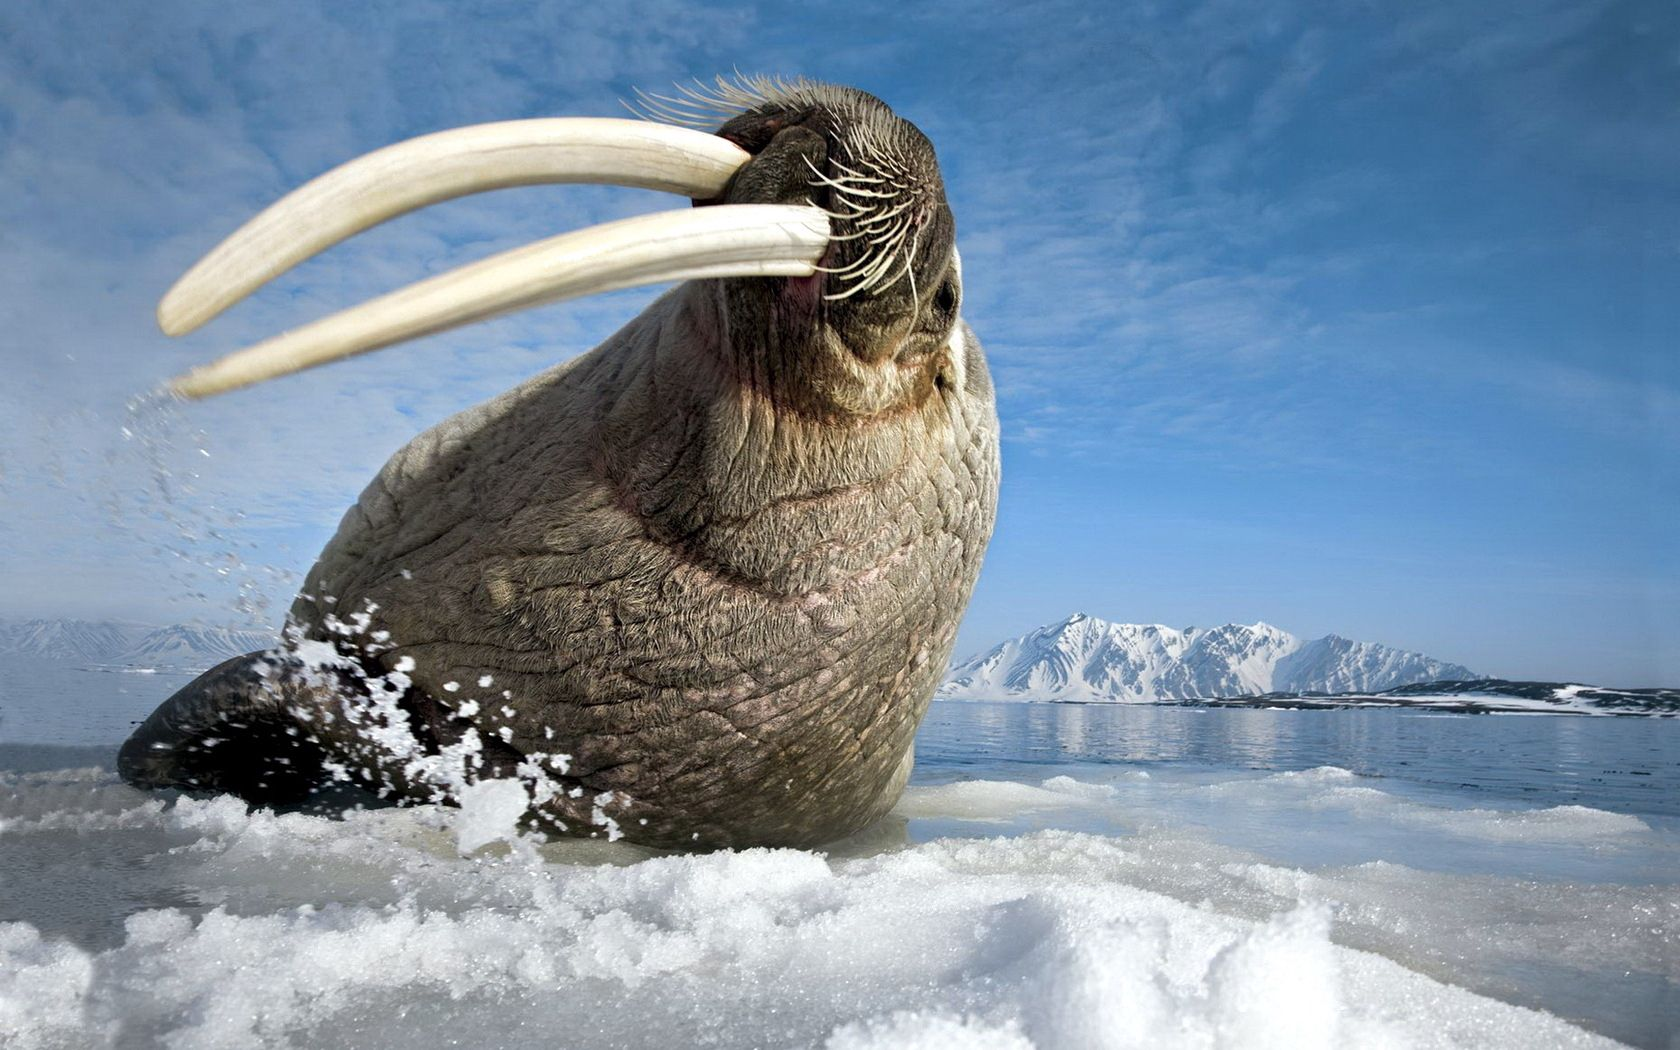 102943 download wallpaper Animals, Walrus, Tusks, Fangs, Sea, Gesture, Bounce, Jump, Hunting, Hunt screensavers and pictures for free